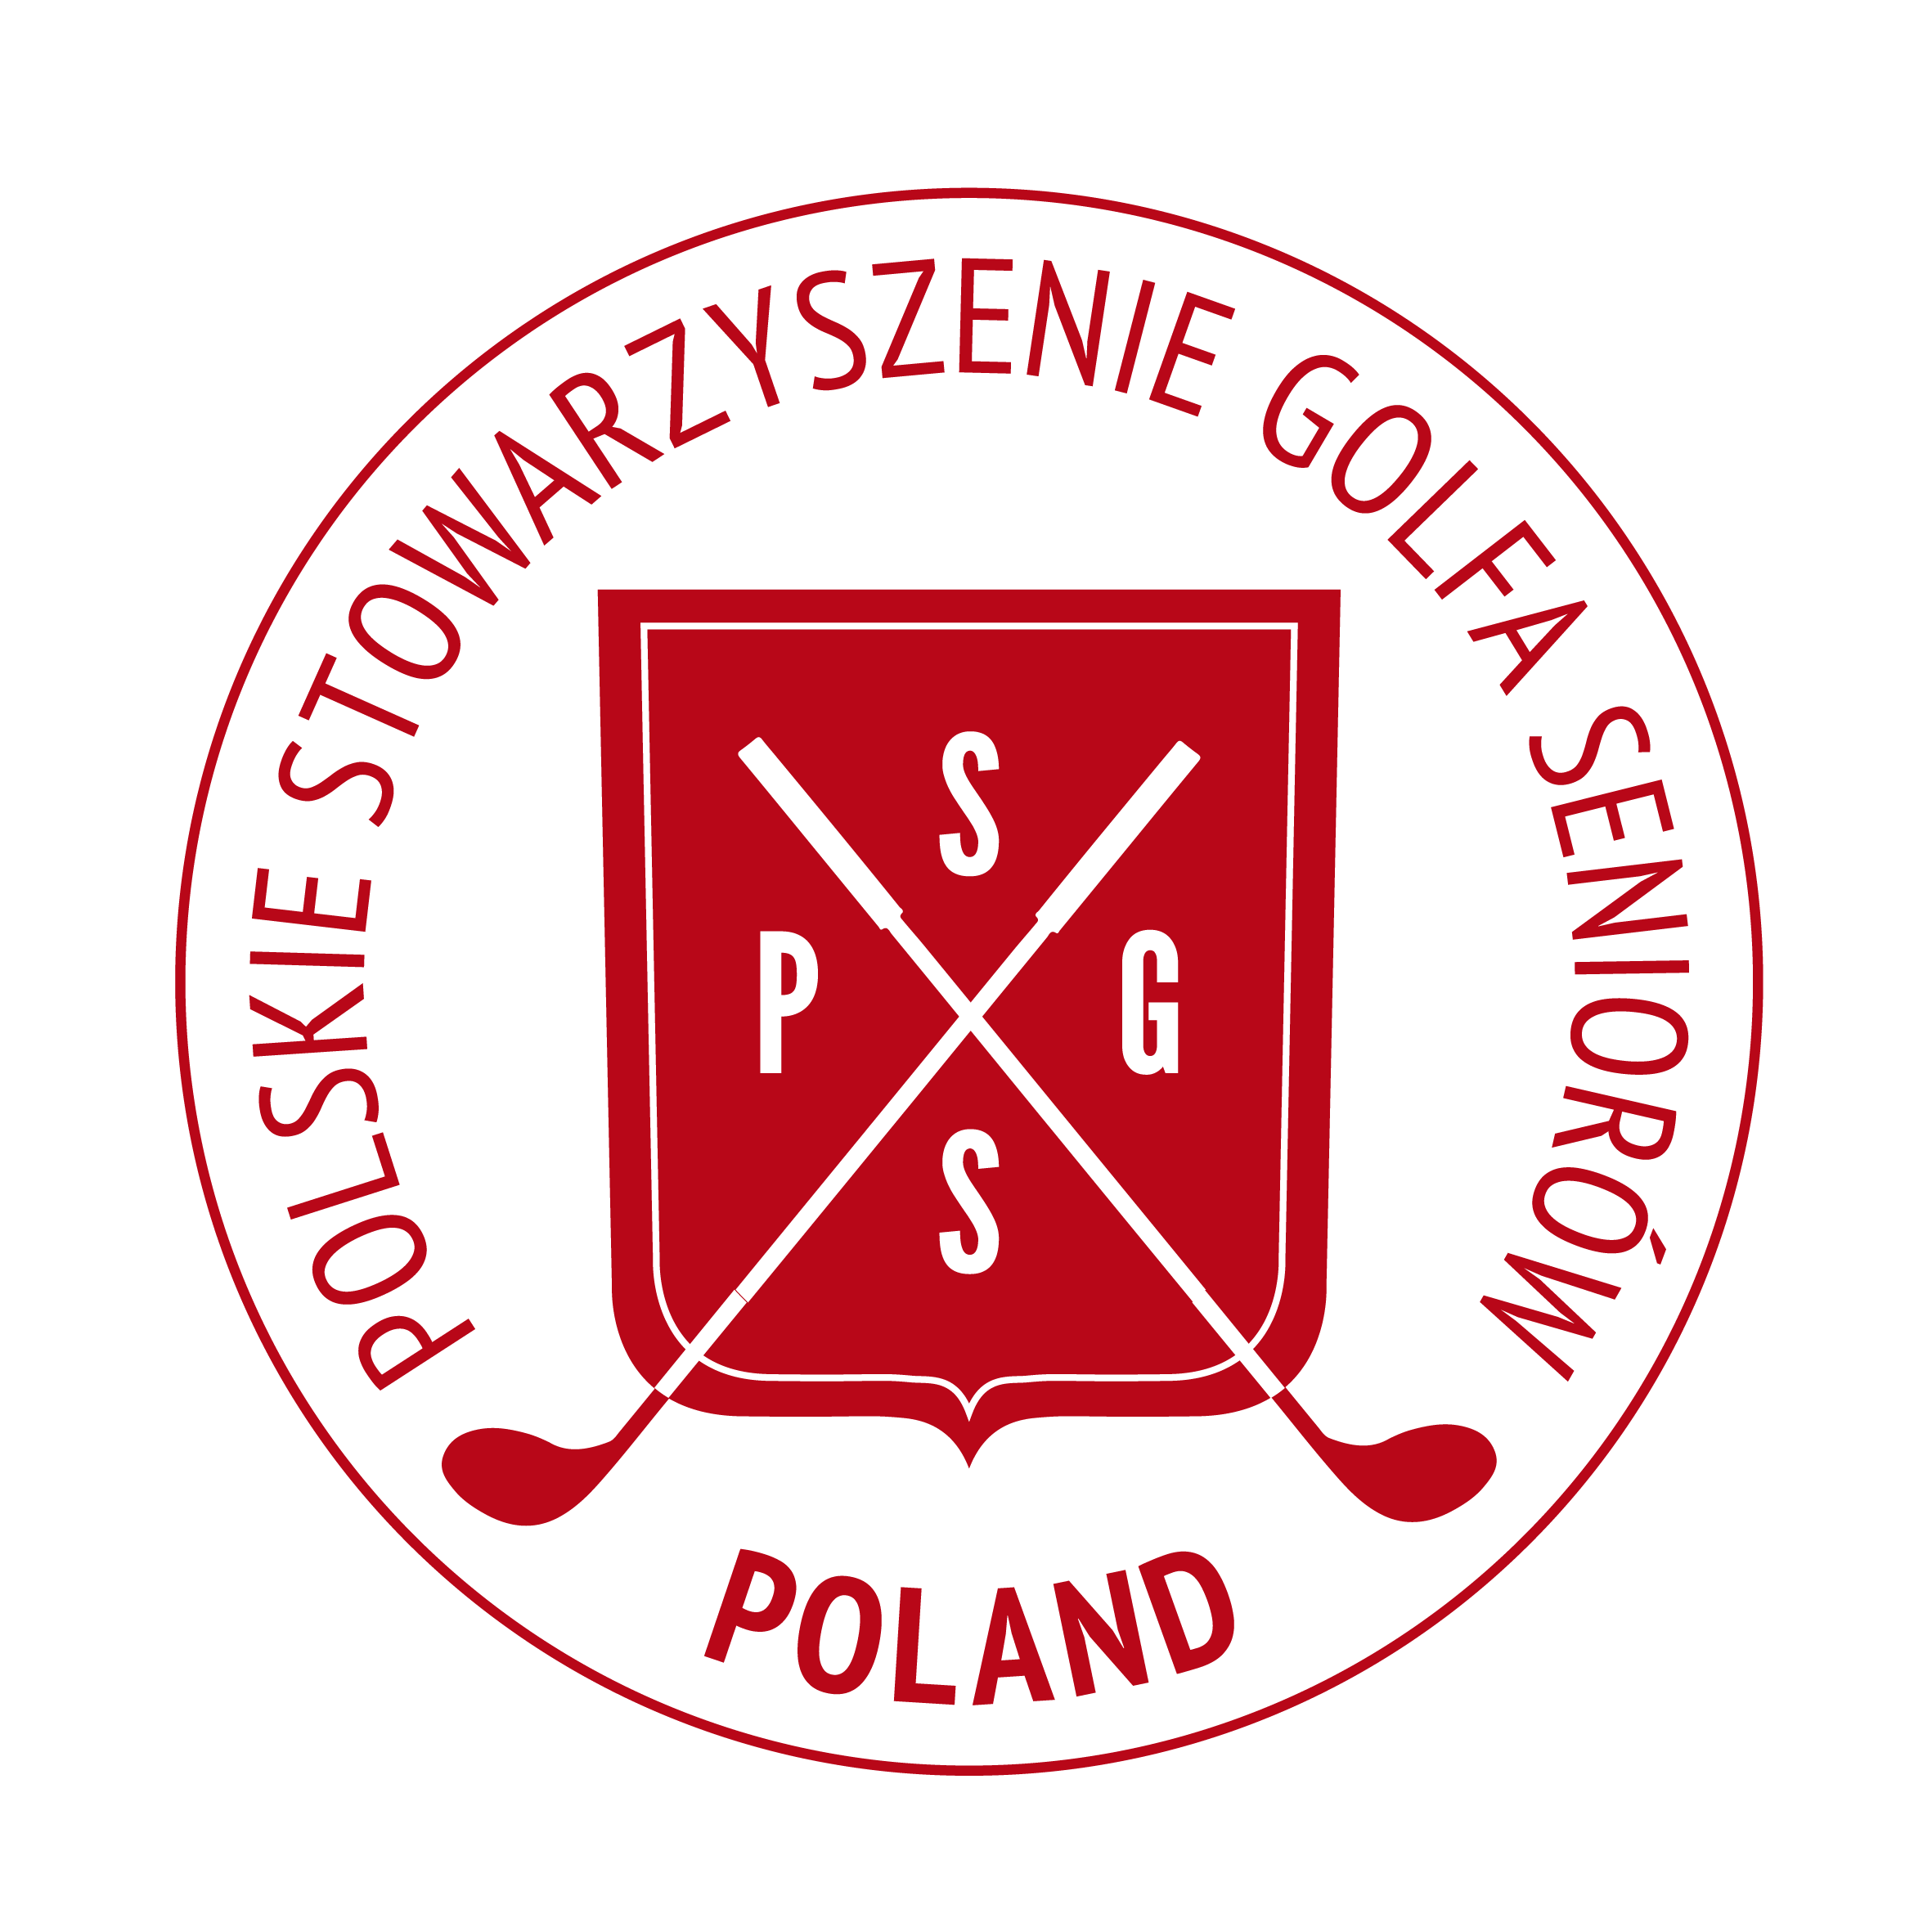 The Polish Senior Golf Assoc Presidents Cup